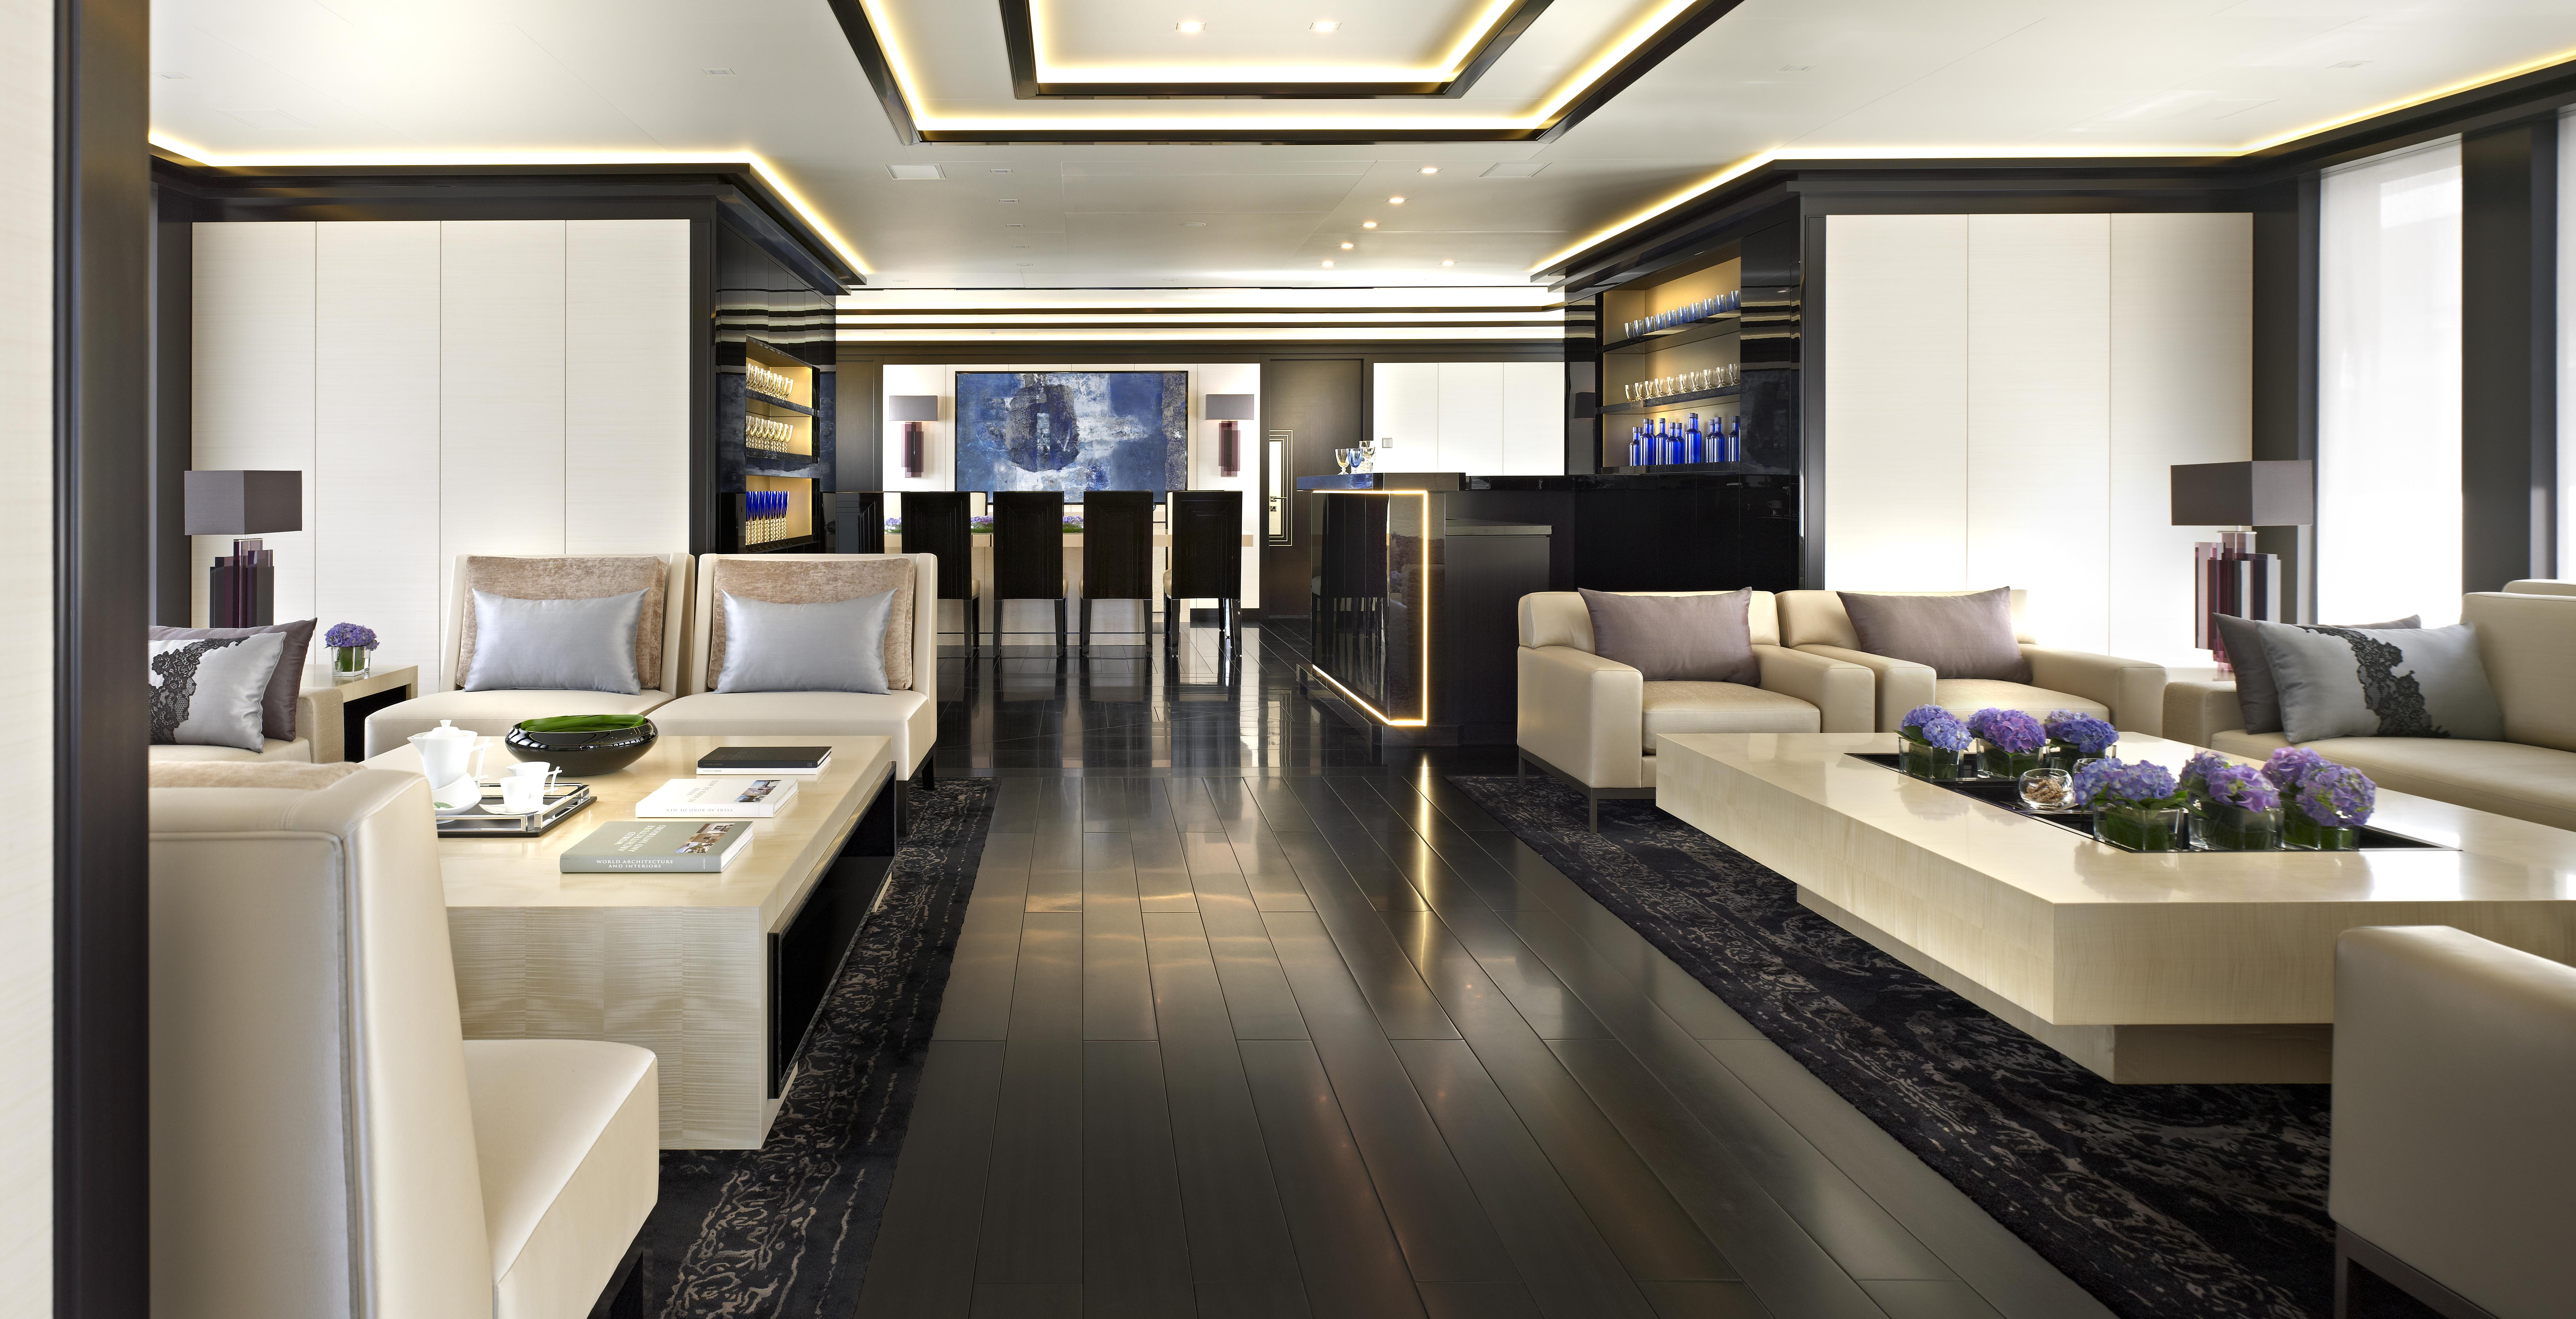 735m motor yacht Sapphire interior by NEWCRUISE Yacht Projects